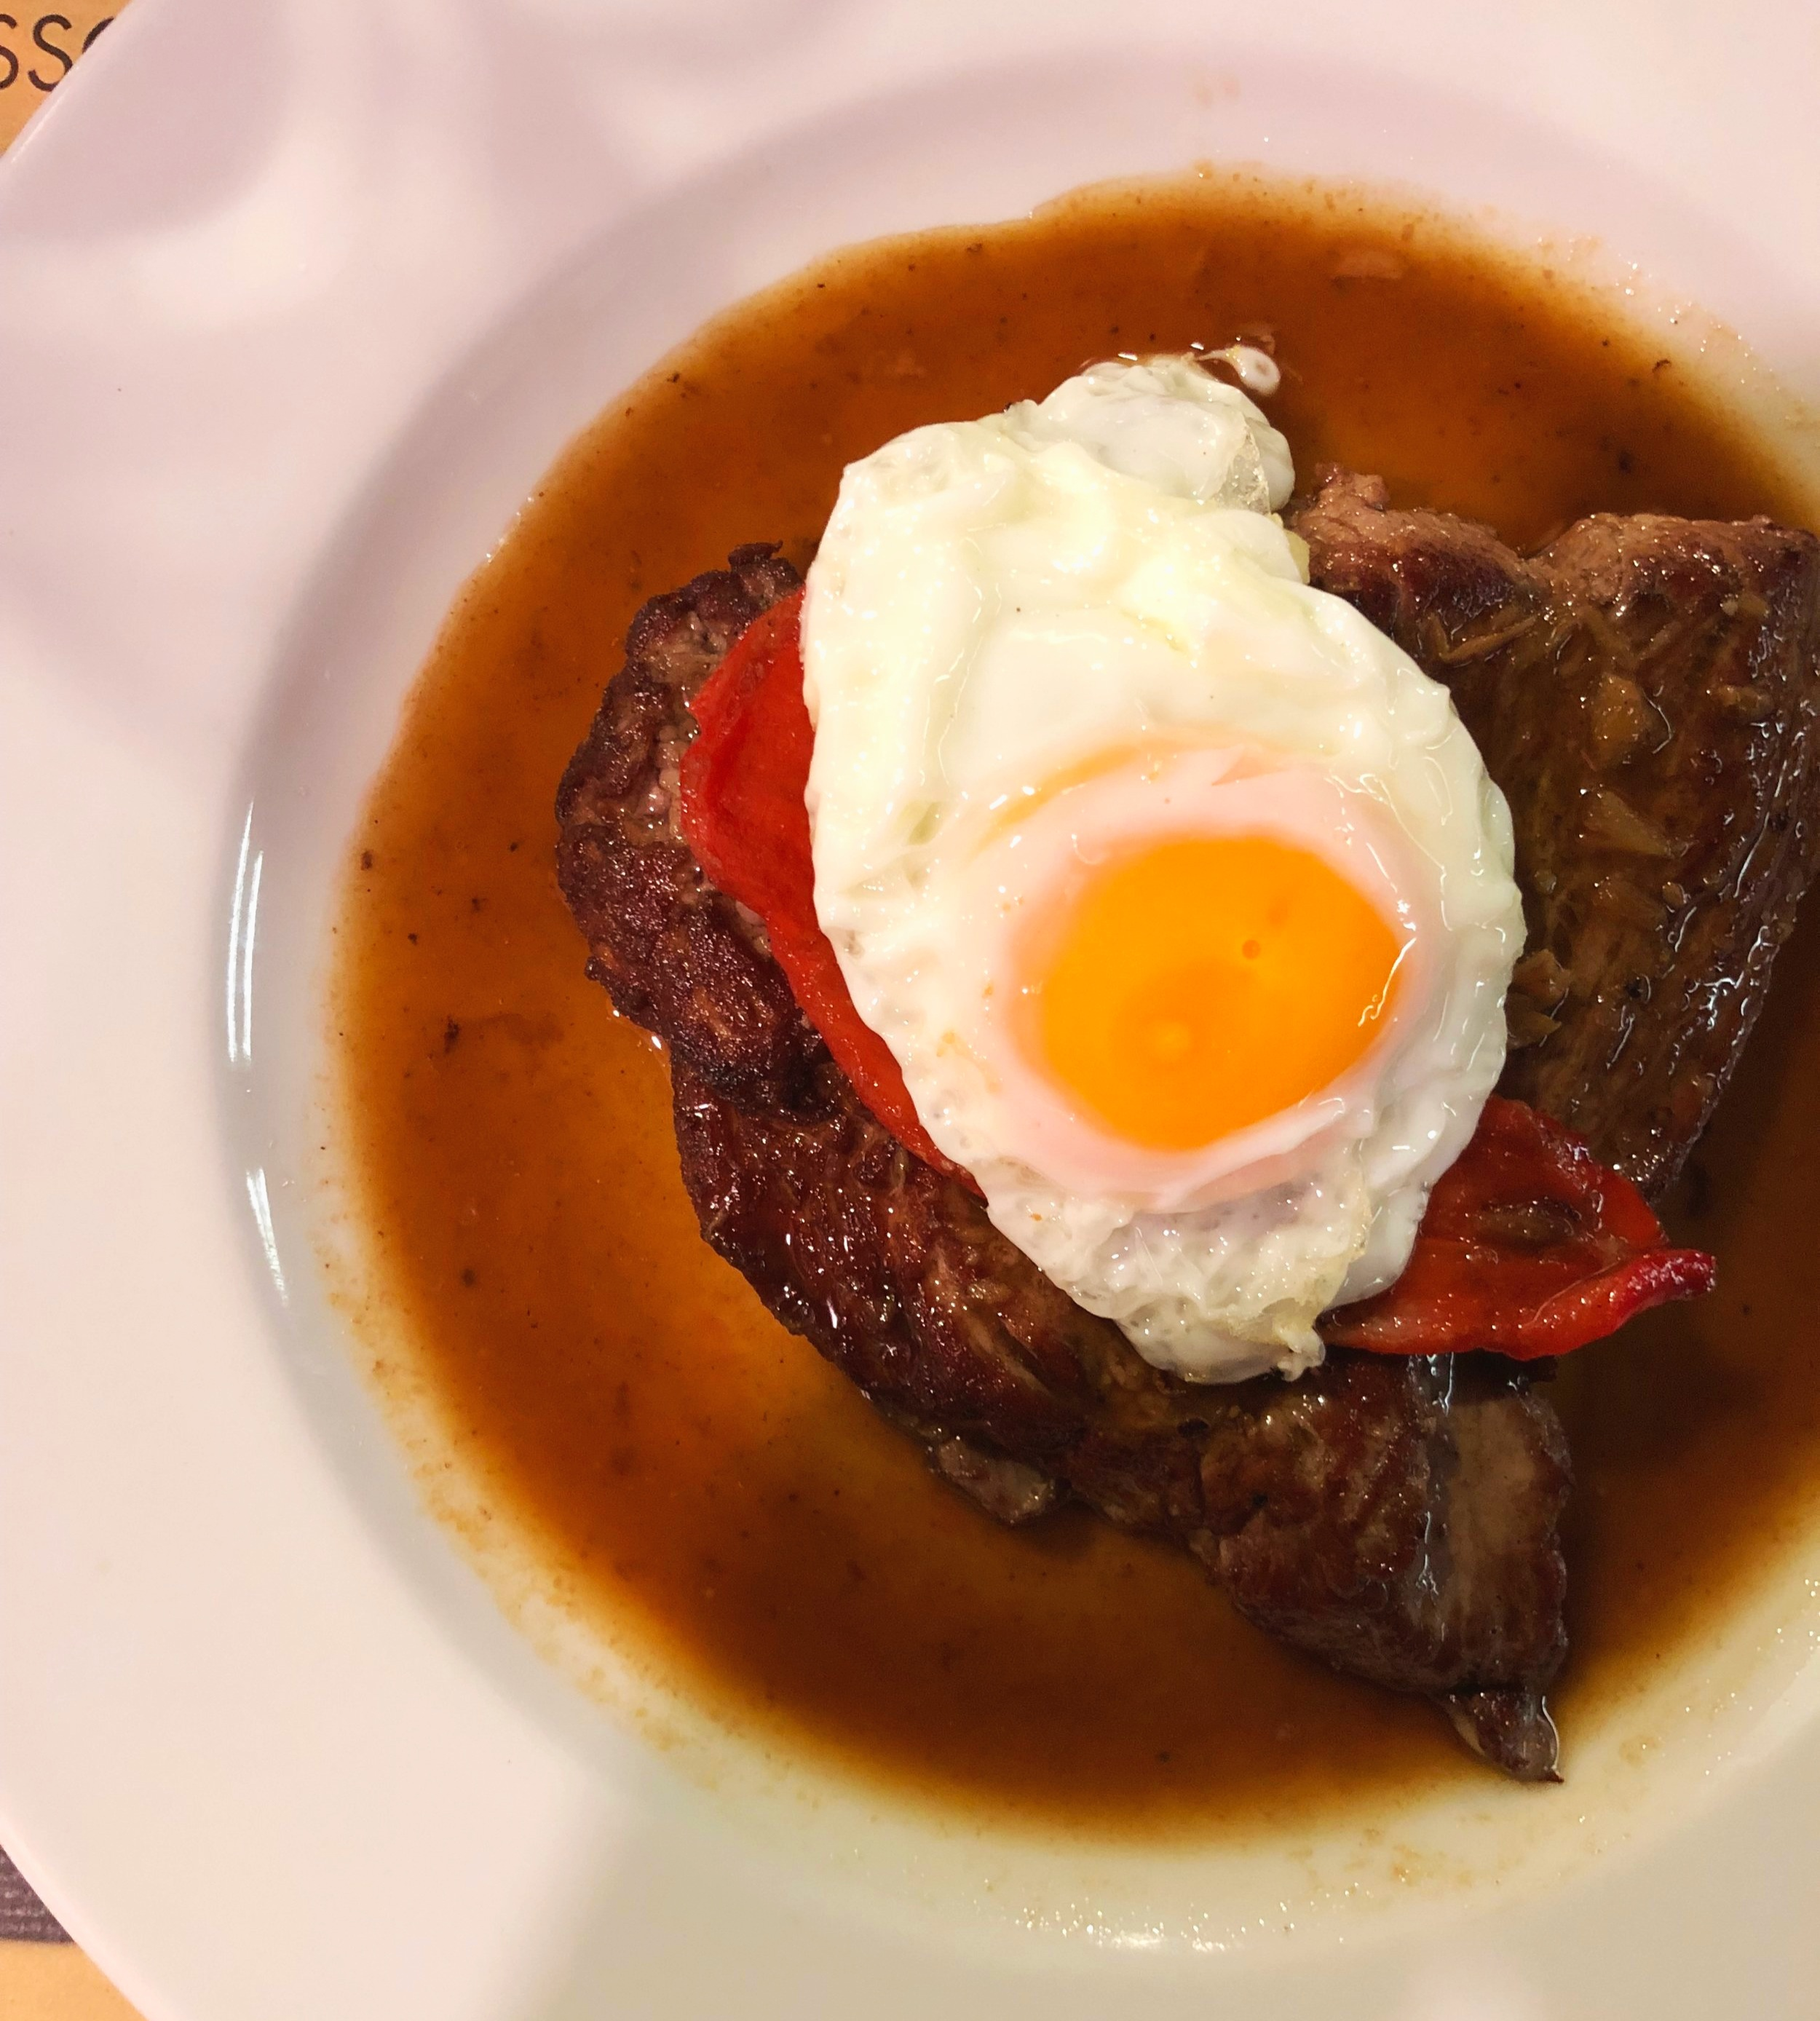 Steak and egg (AZORES, 2019  ©  JOEL ANG PHOTOGRAPHY)